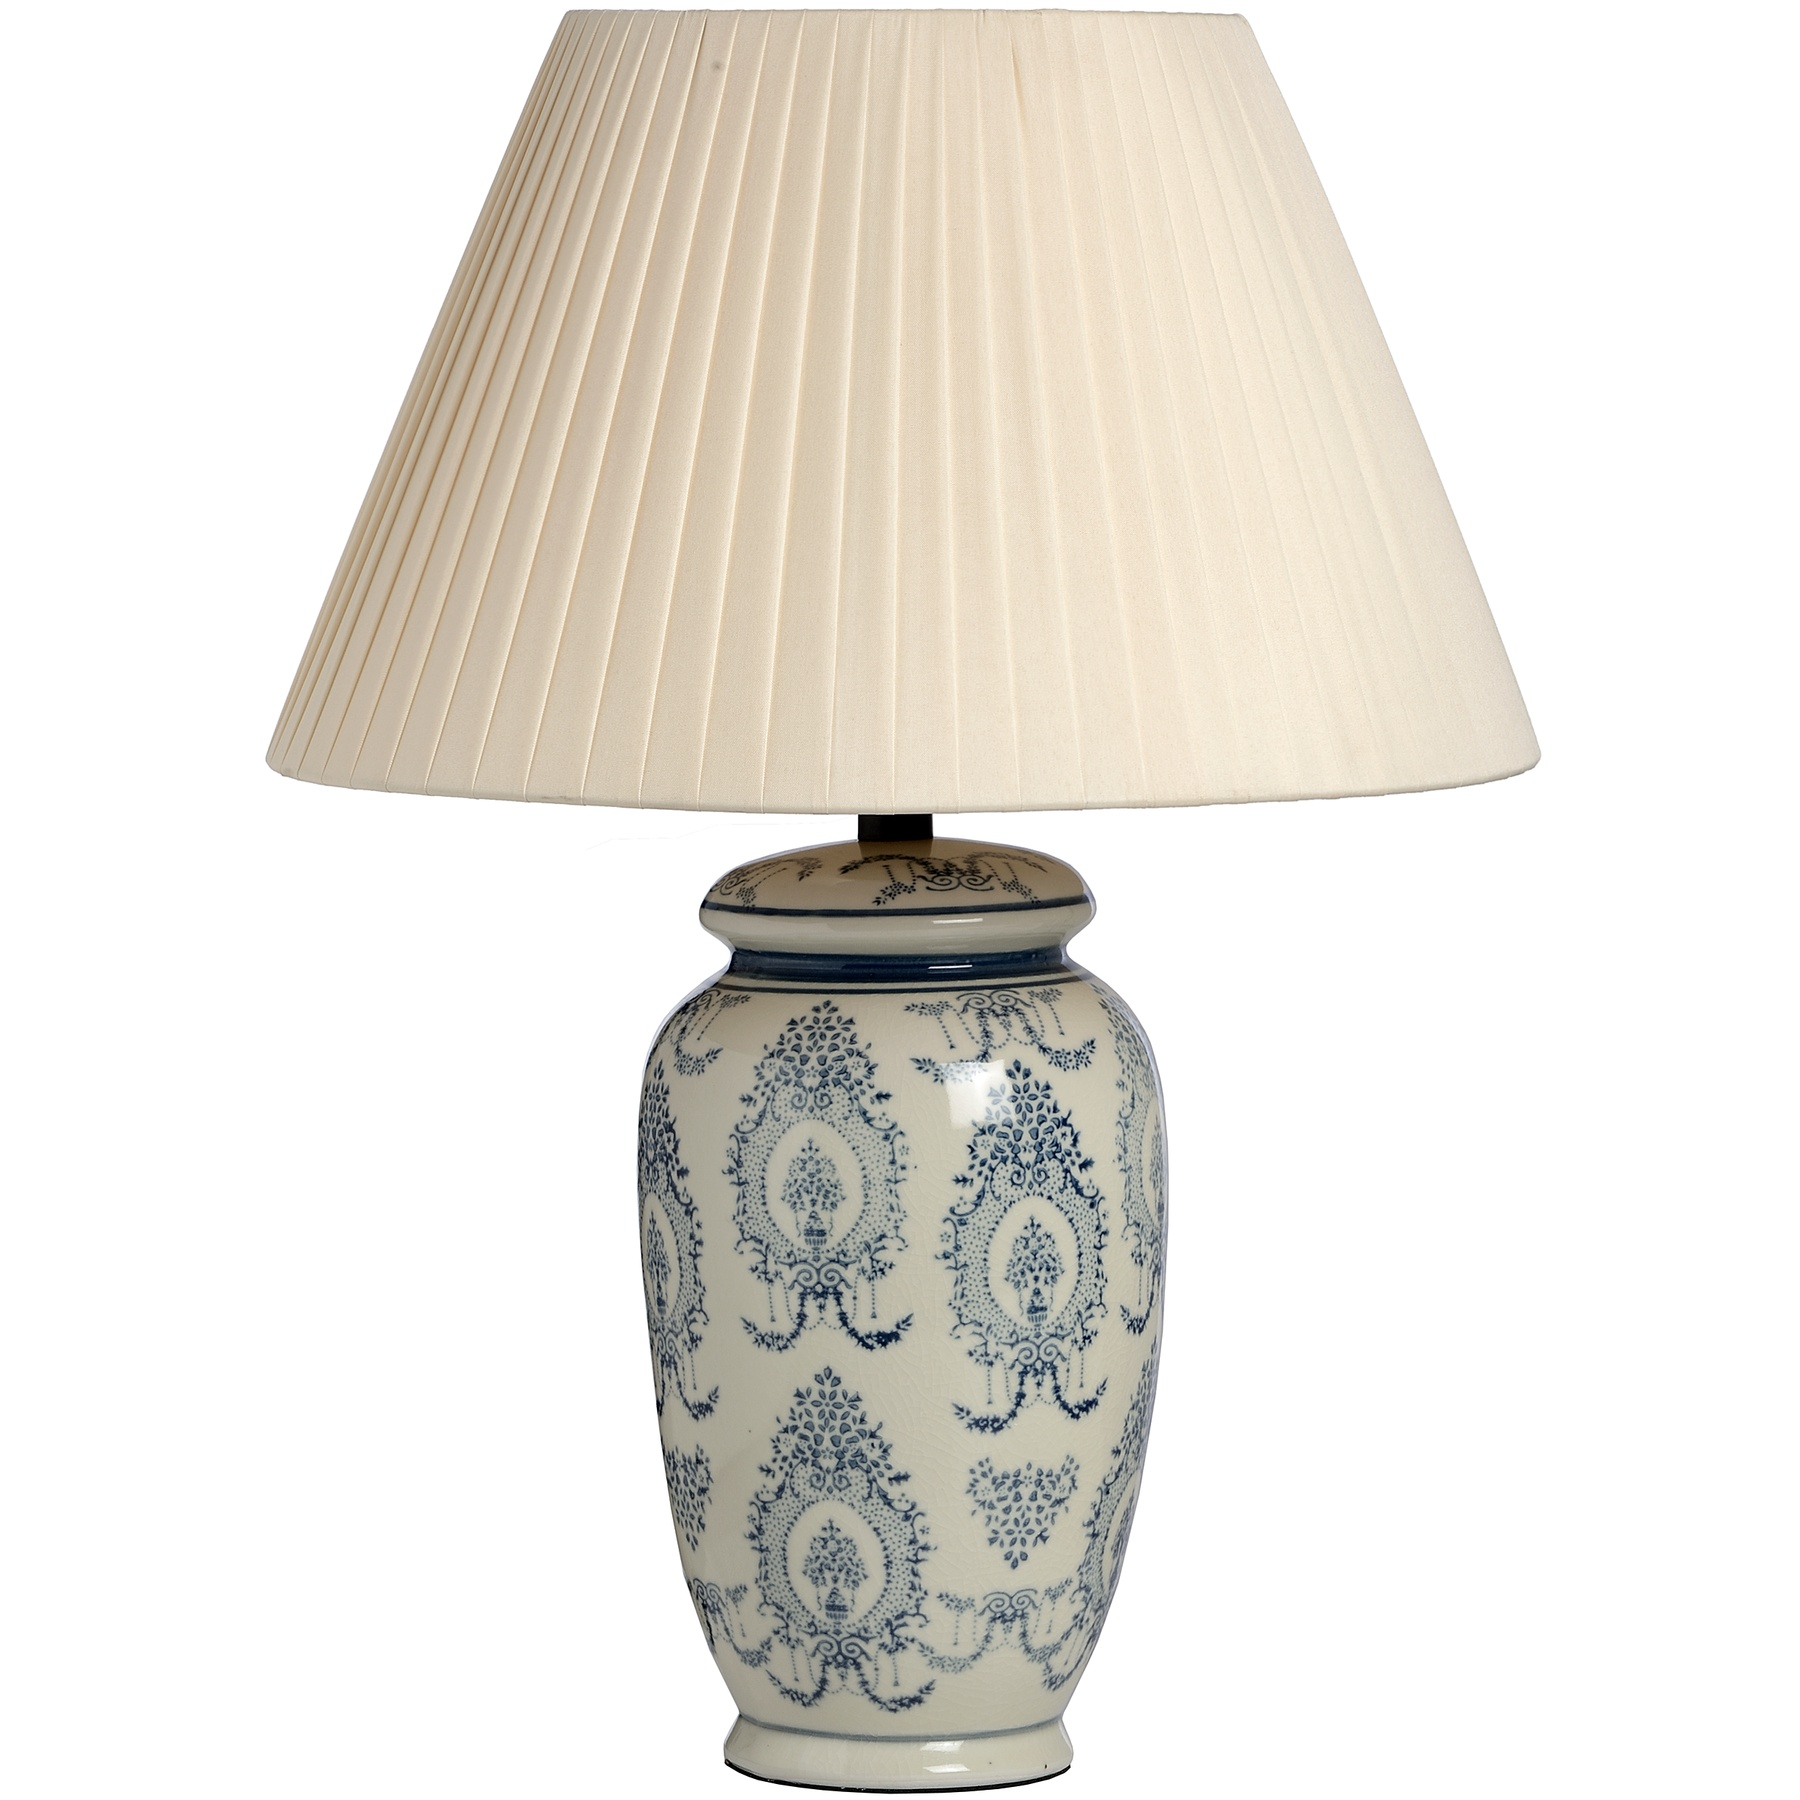 Hill Interiors Light Blue Pattern Ceramic Table Lamp